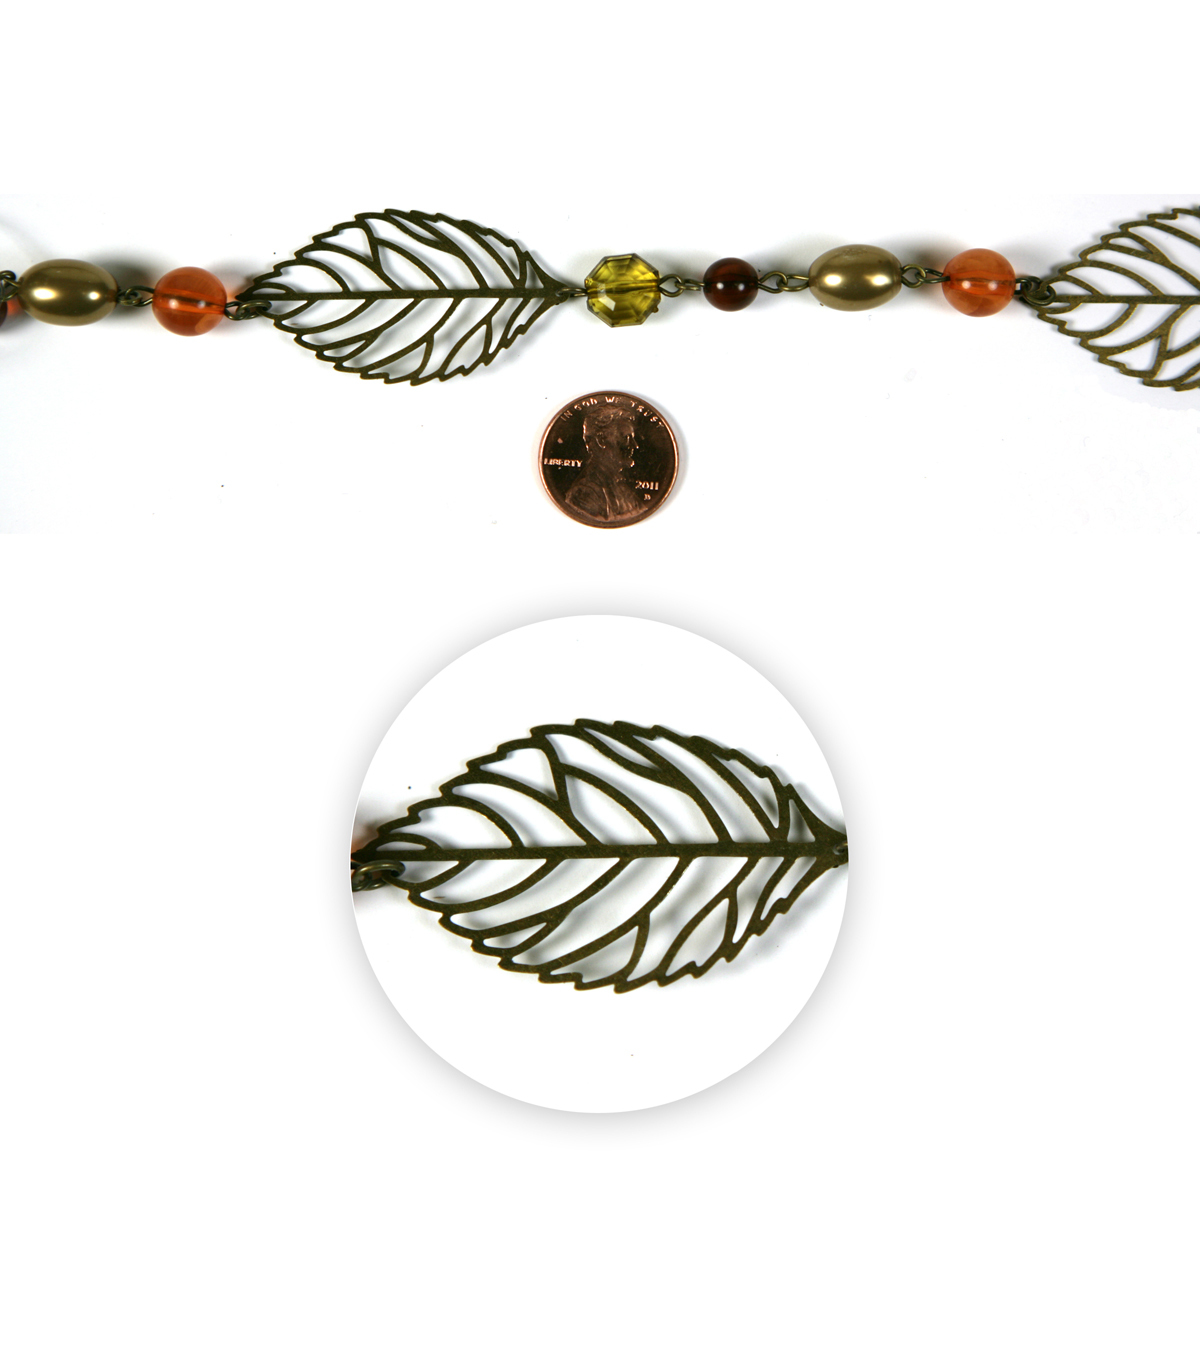 Blue Moon Strung Beaded Decorative Chain,Various Shapes,Autumn,Leaf